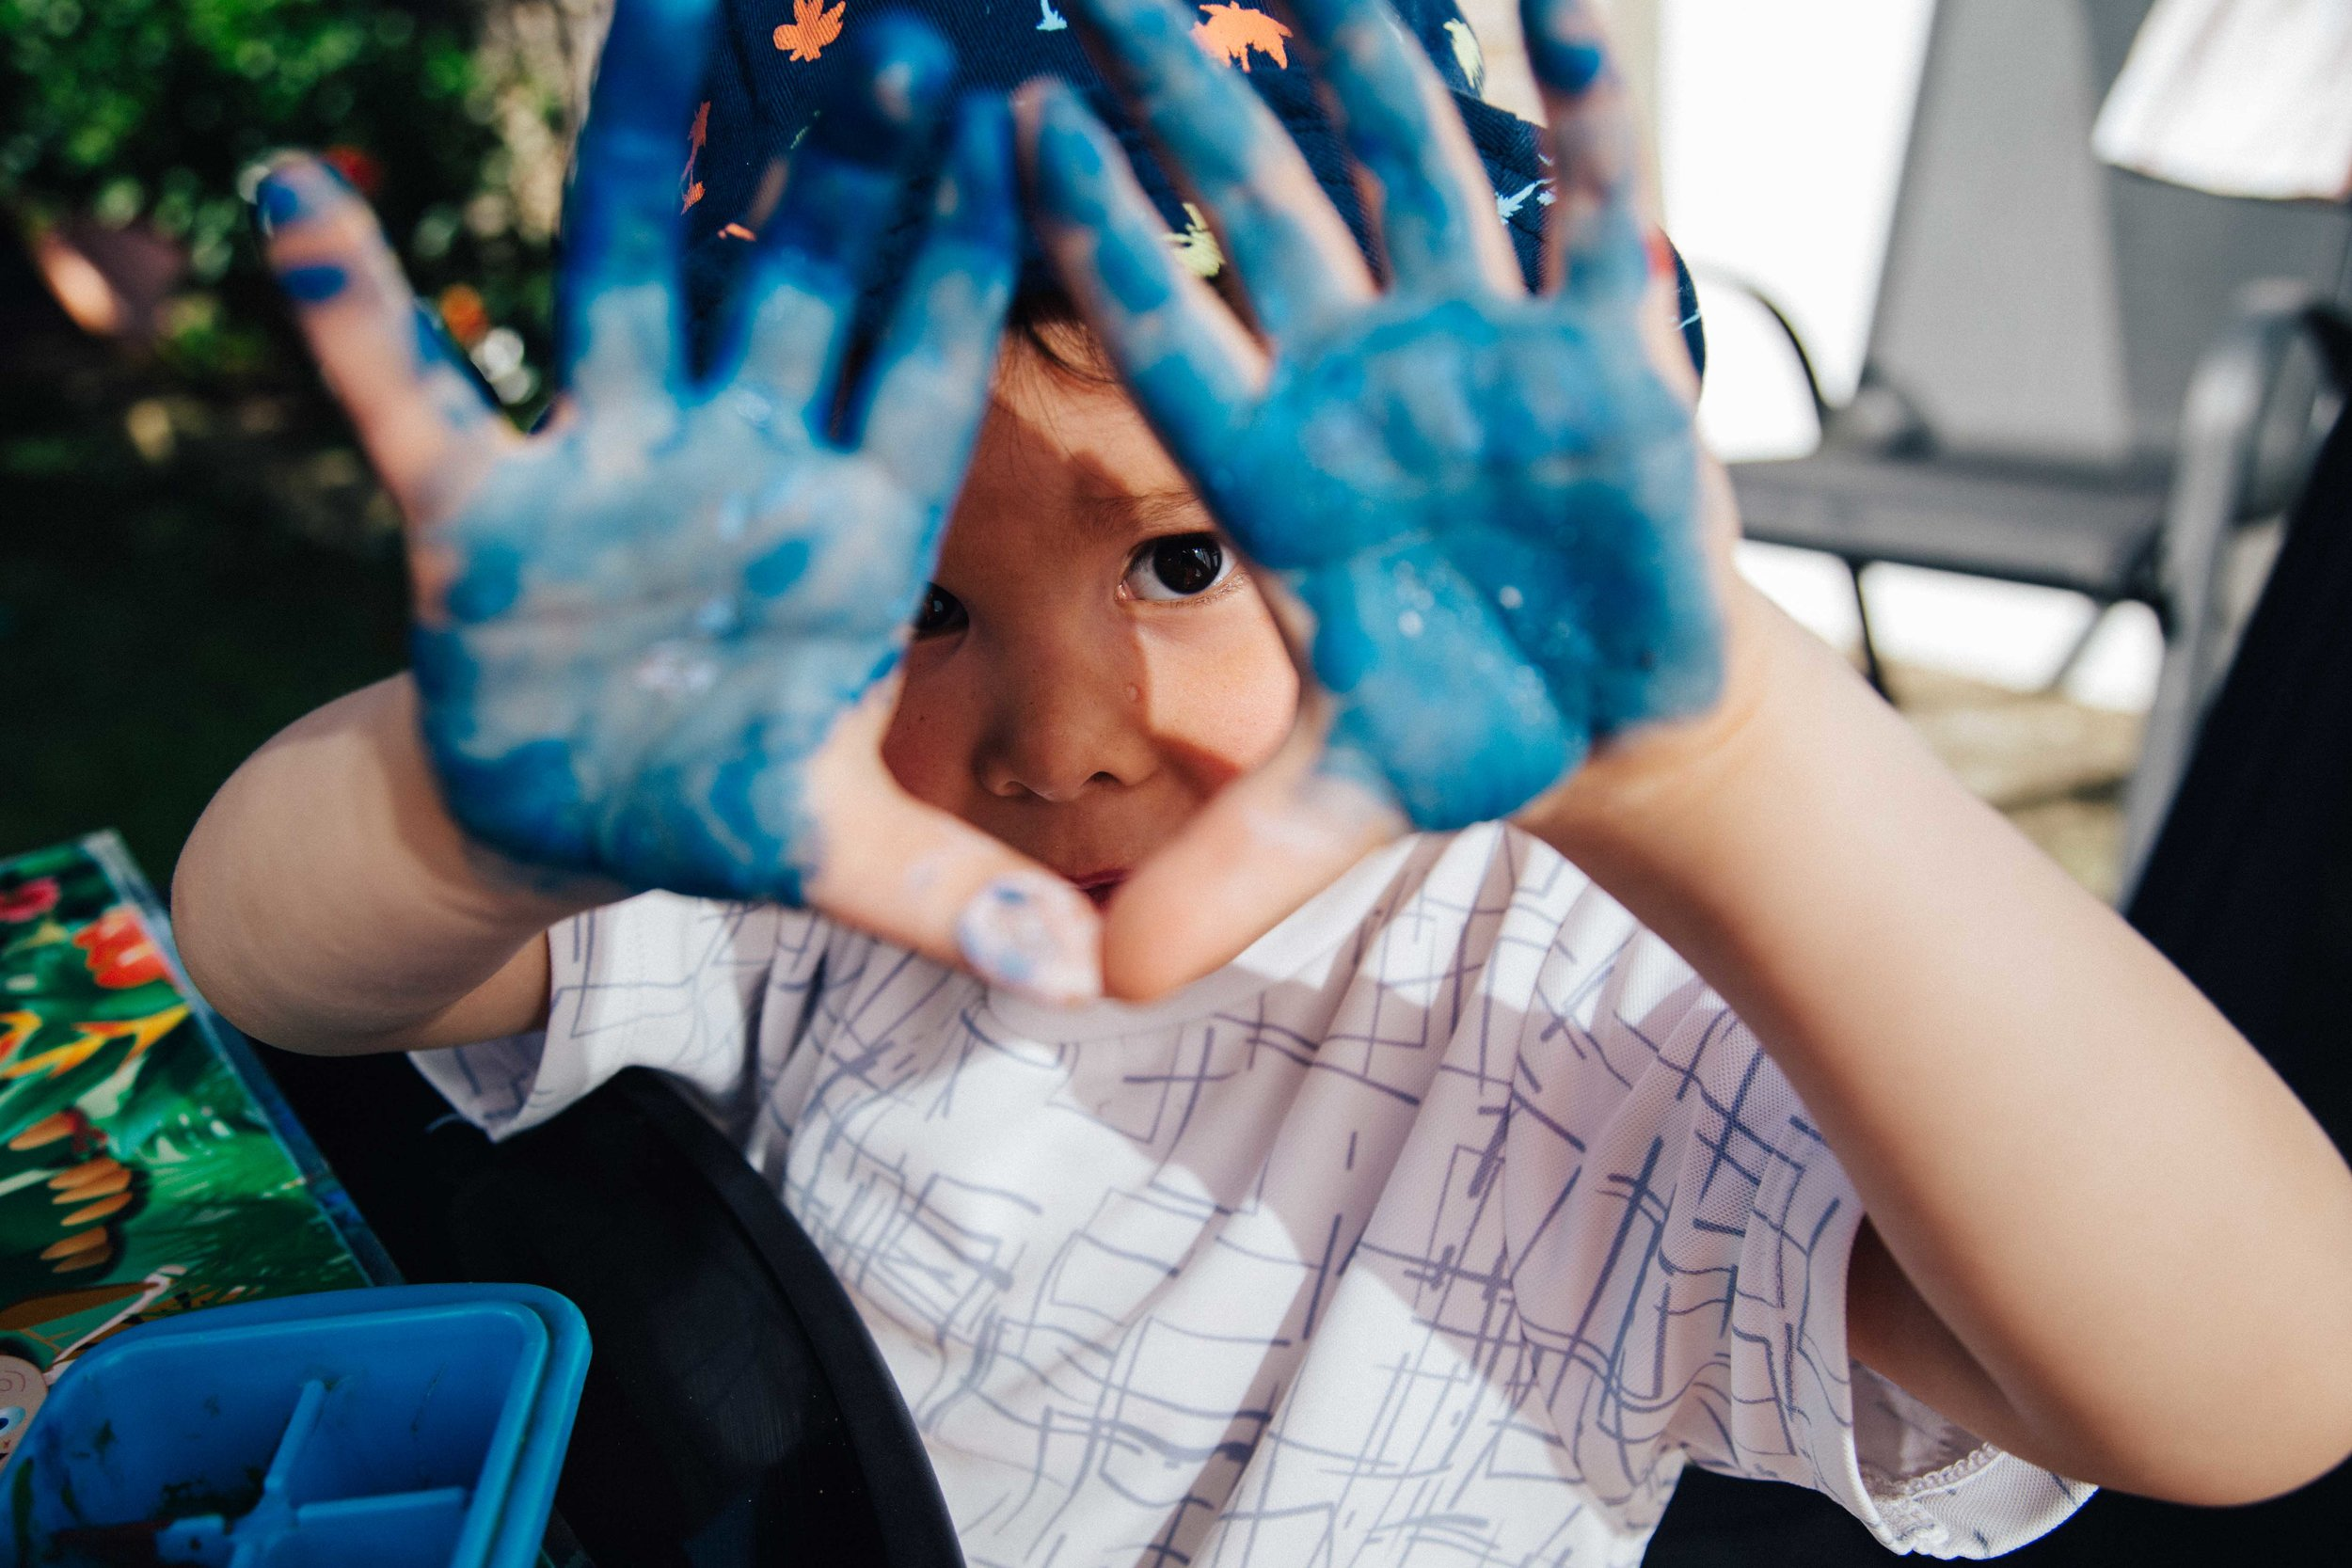 Boy with hands full of blue paint